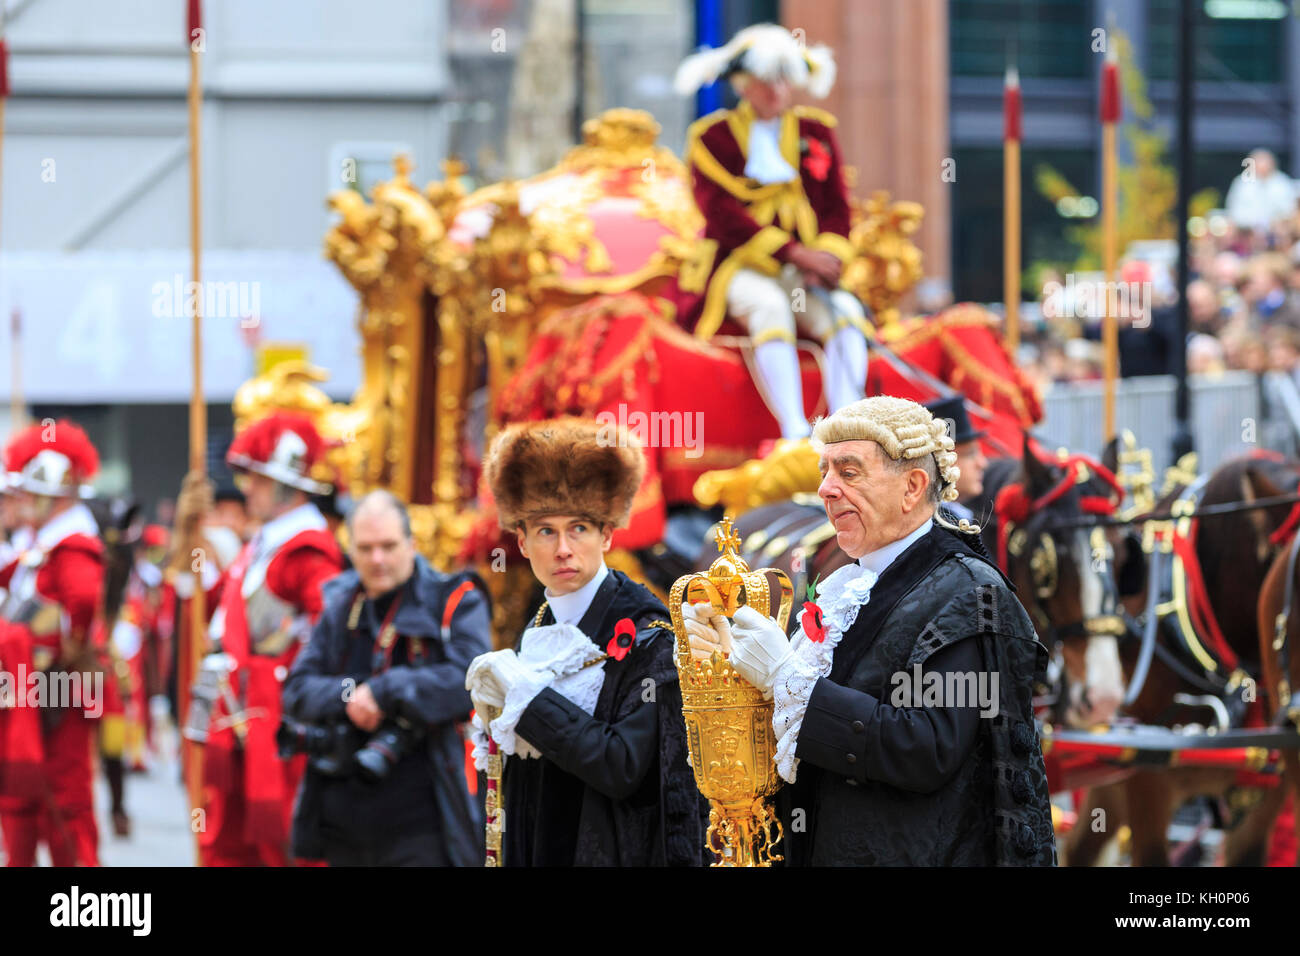 City of London, UK. 11th Nov, 2017. The state coach arrives. The 2017 Lord Mayor's Parade, an 800 year old custom, - Stock Image